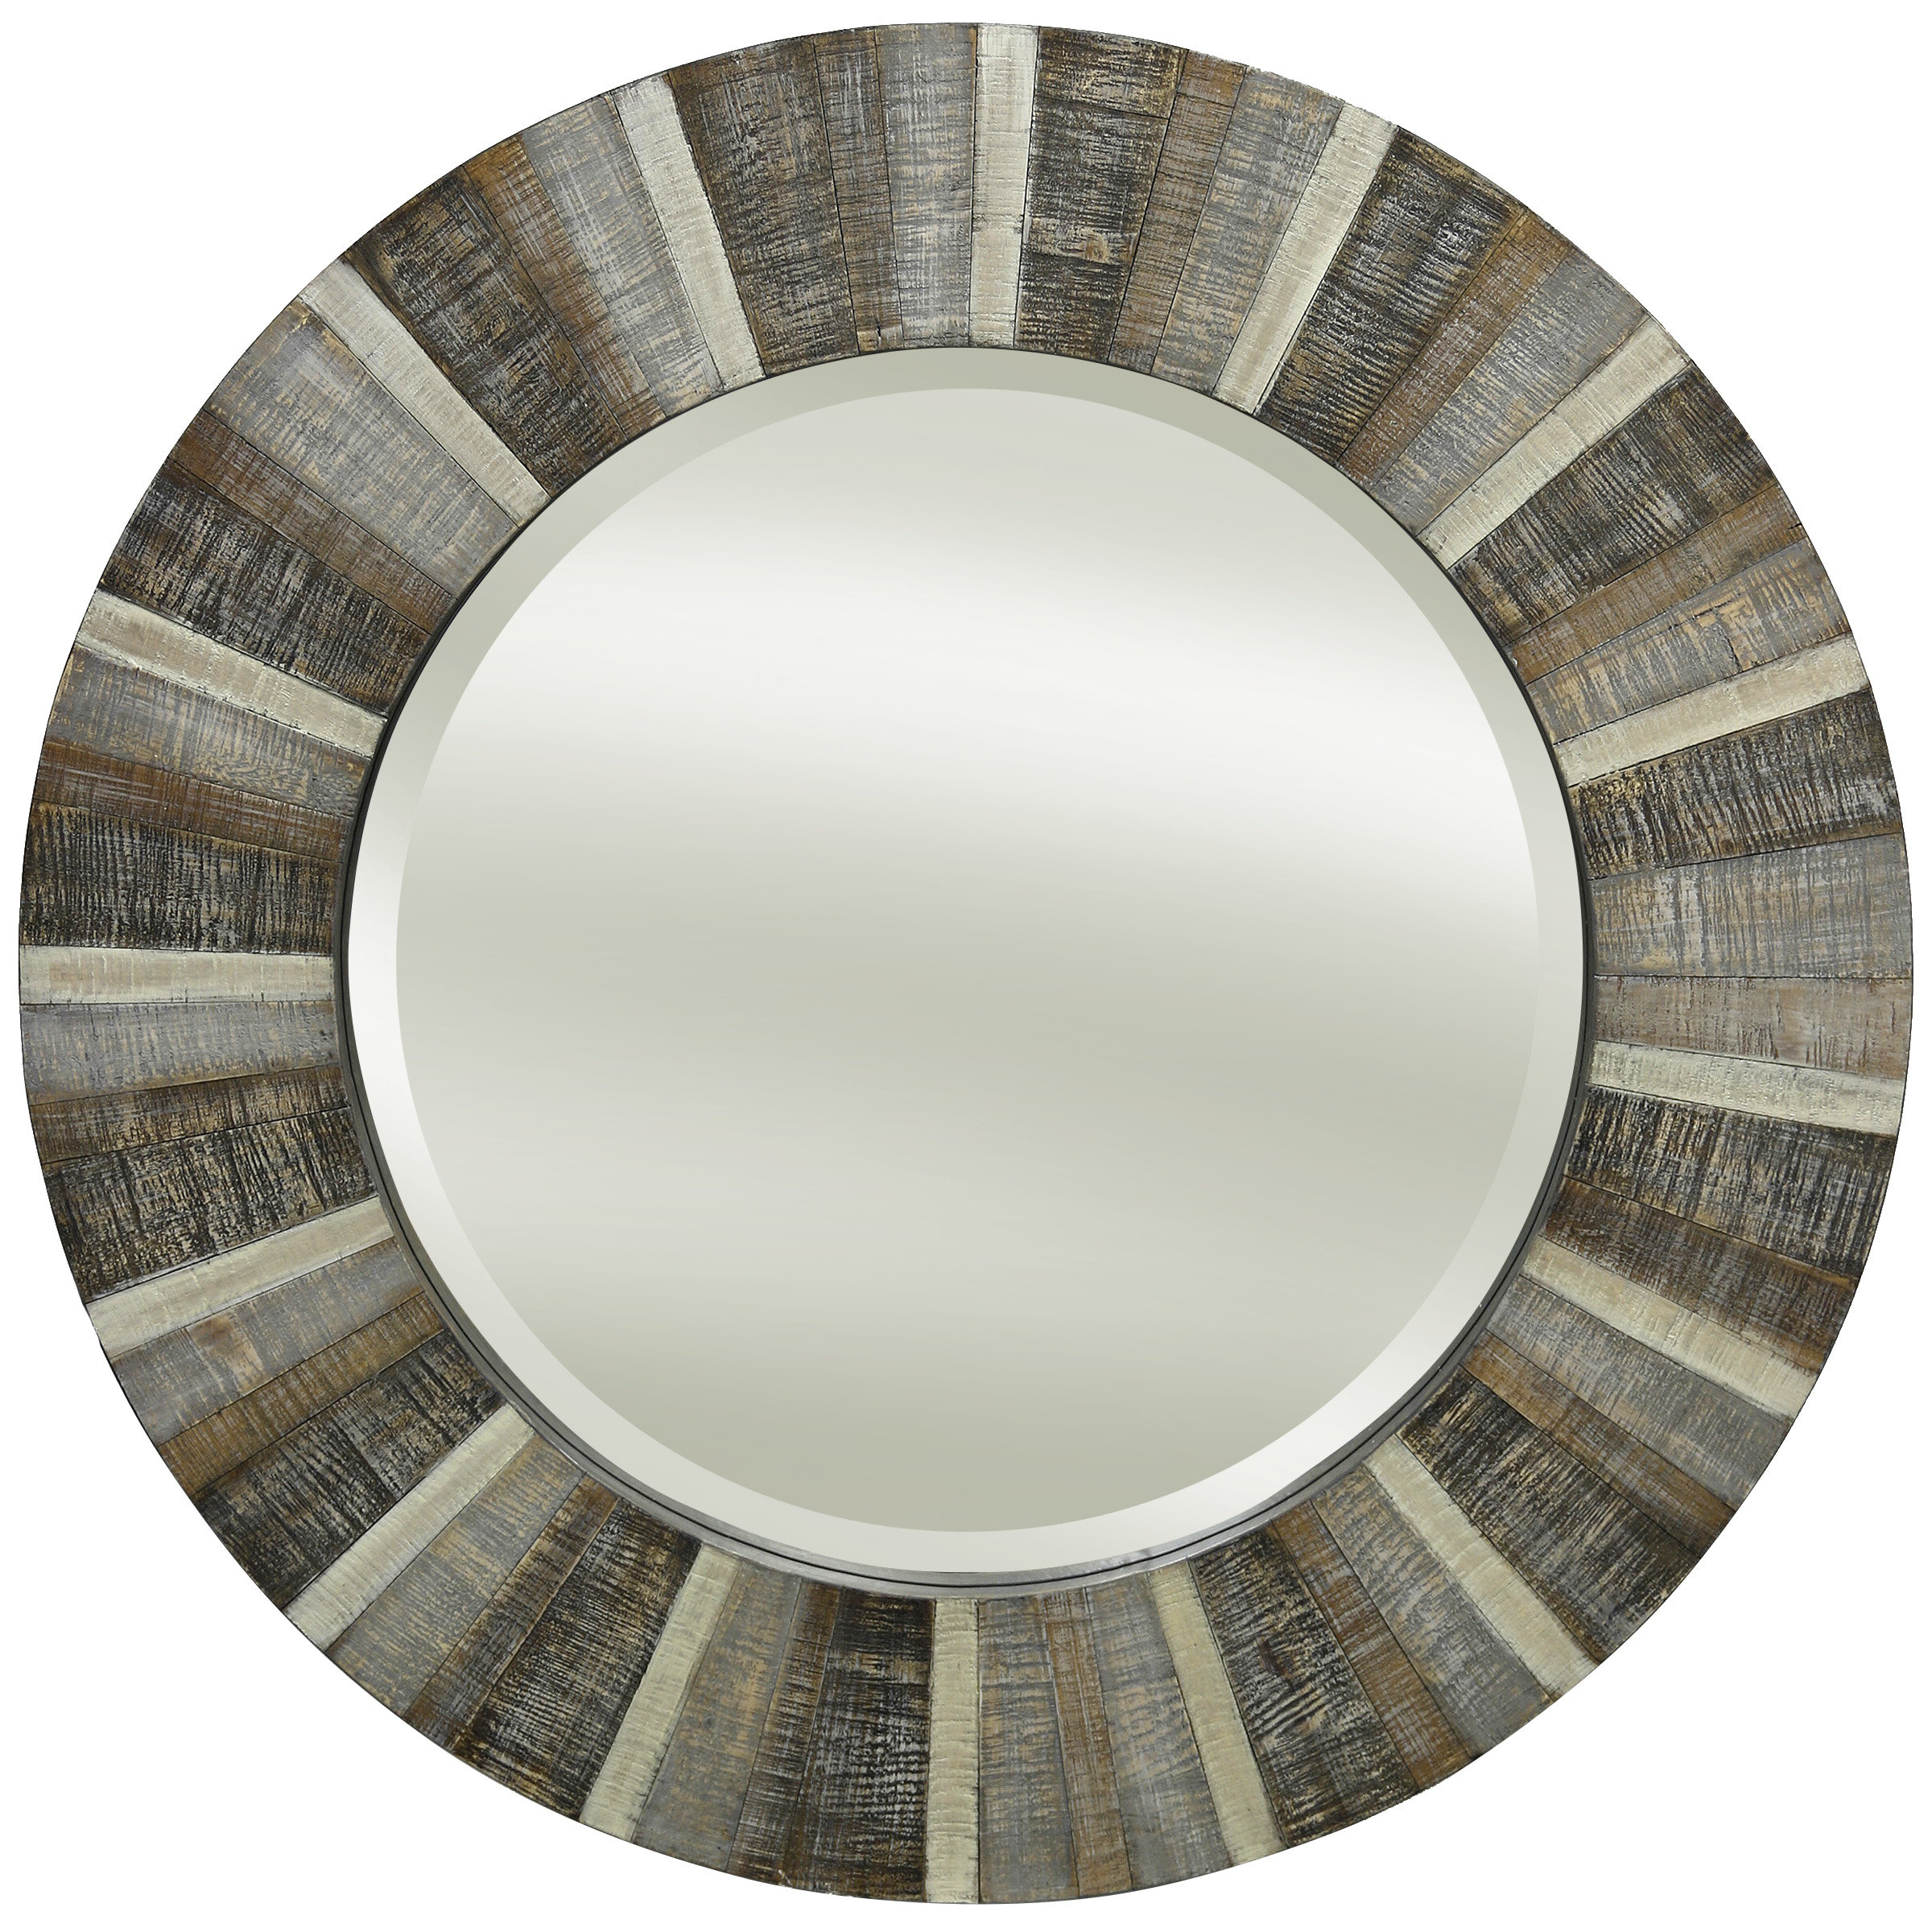 Hughley Natural Wood Wall Coastal Accent Mirror Inside Most Up To Date Hussain Tile Accent Wall Mirrors (View 14 of 20)